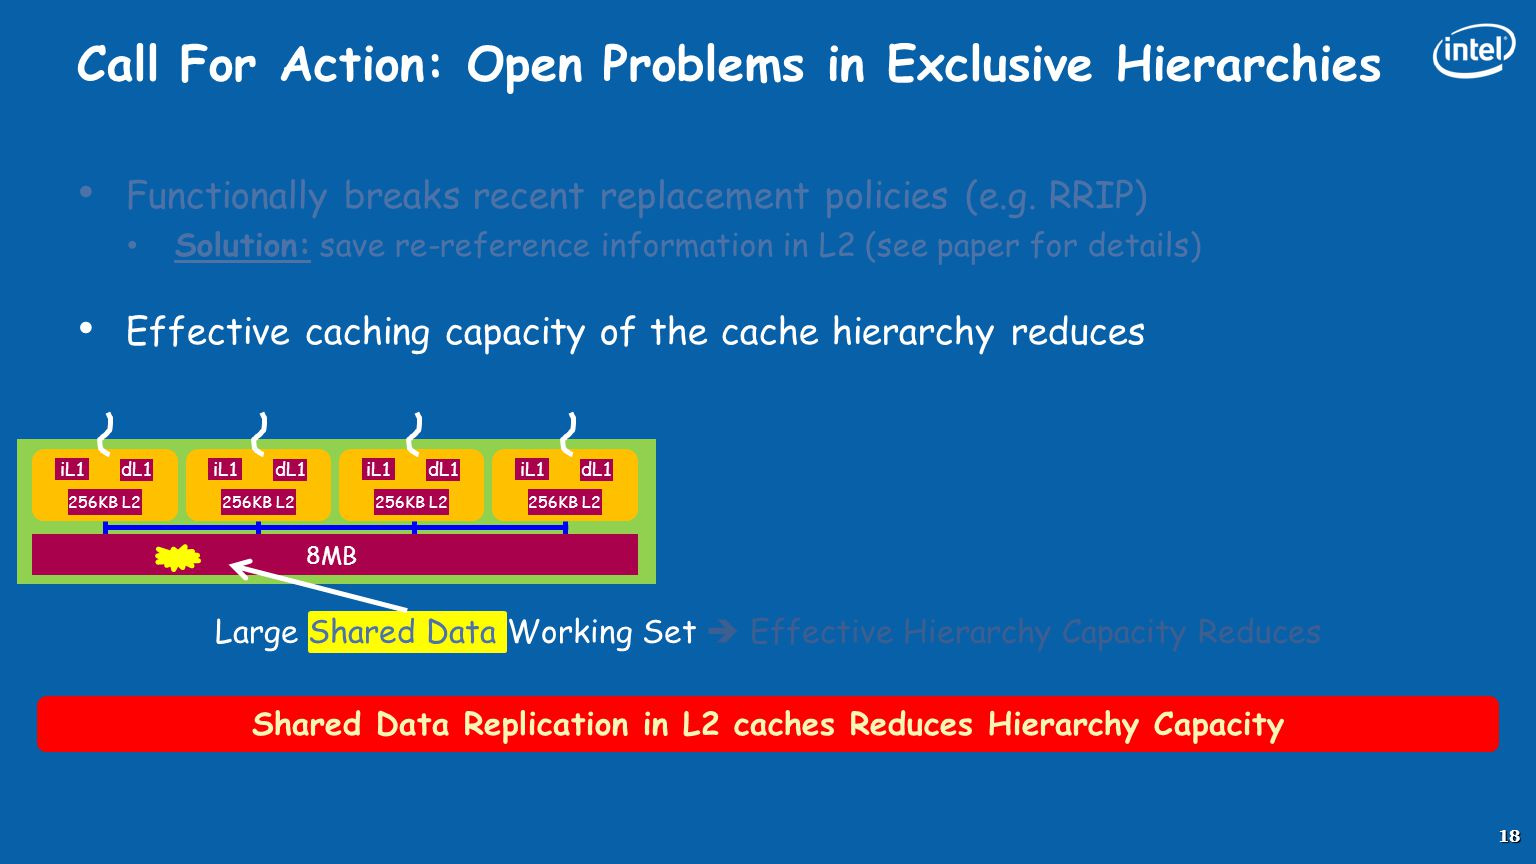 Call For Action: Open Problems in Exclusive Hierarchies